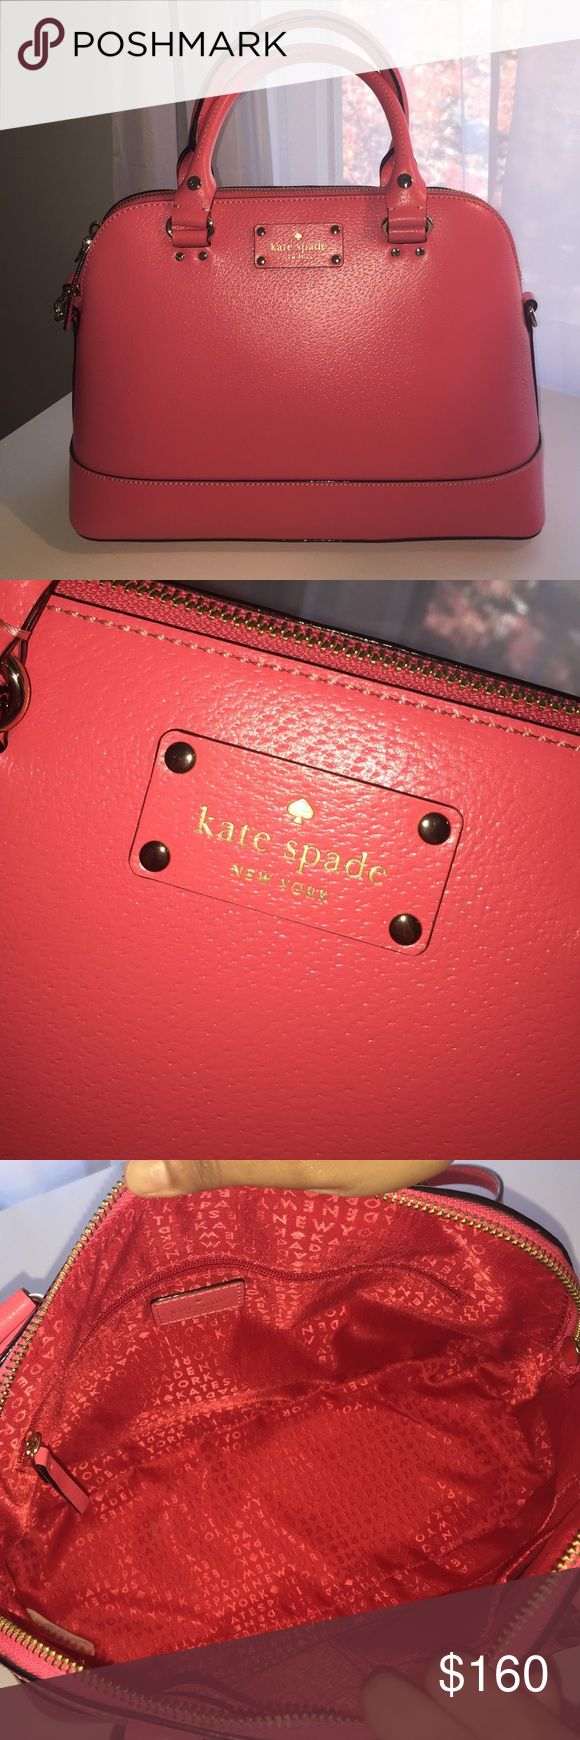 Kate spade small rachelle (pink) Perfect condition! Medium sized bag with removable cross-body strap. No scratches or dents. kate spade Bags Crossbody Bags